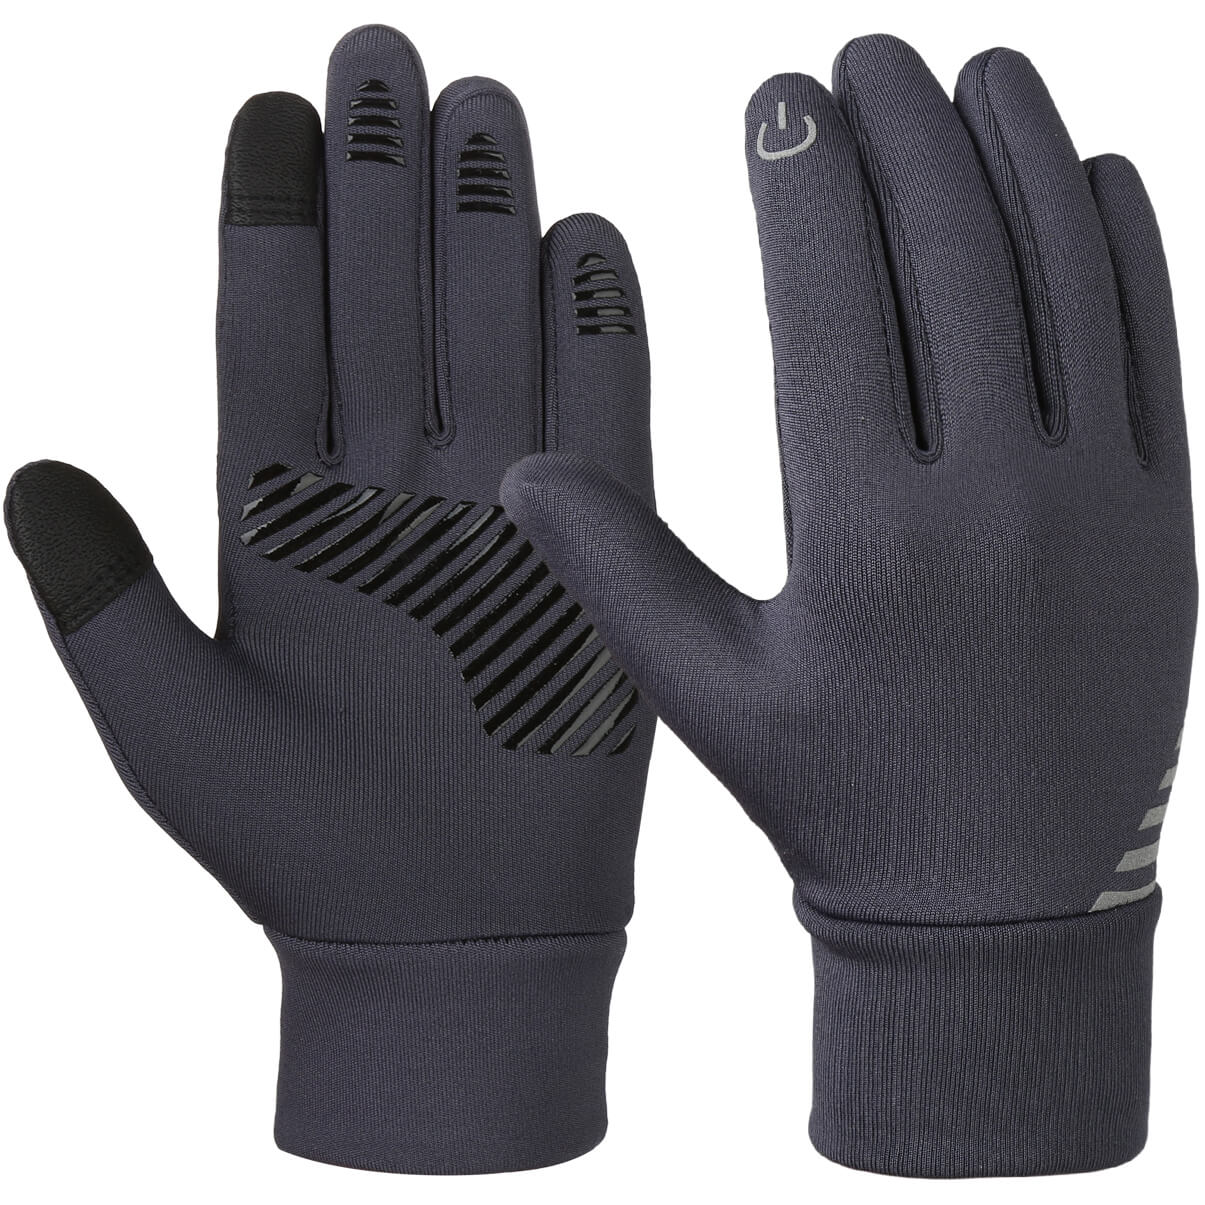 What  Should  We Consider When Selecting Winter Gloves For Kids